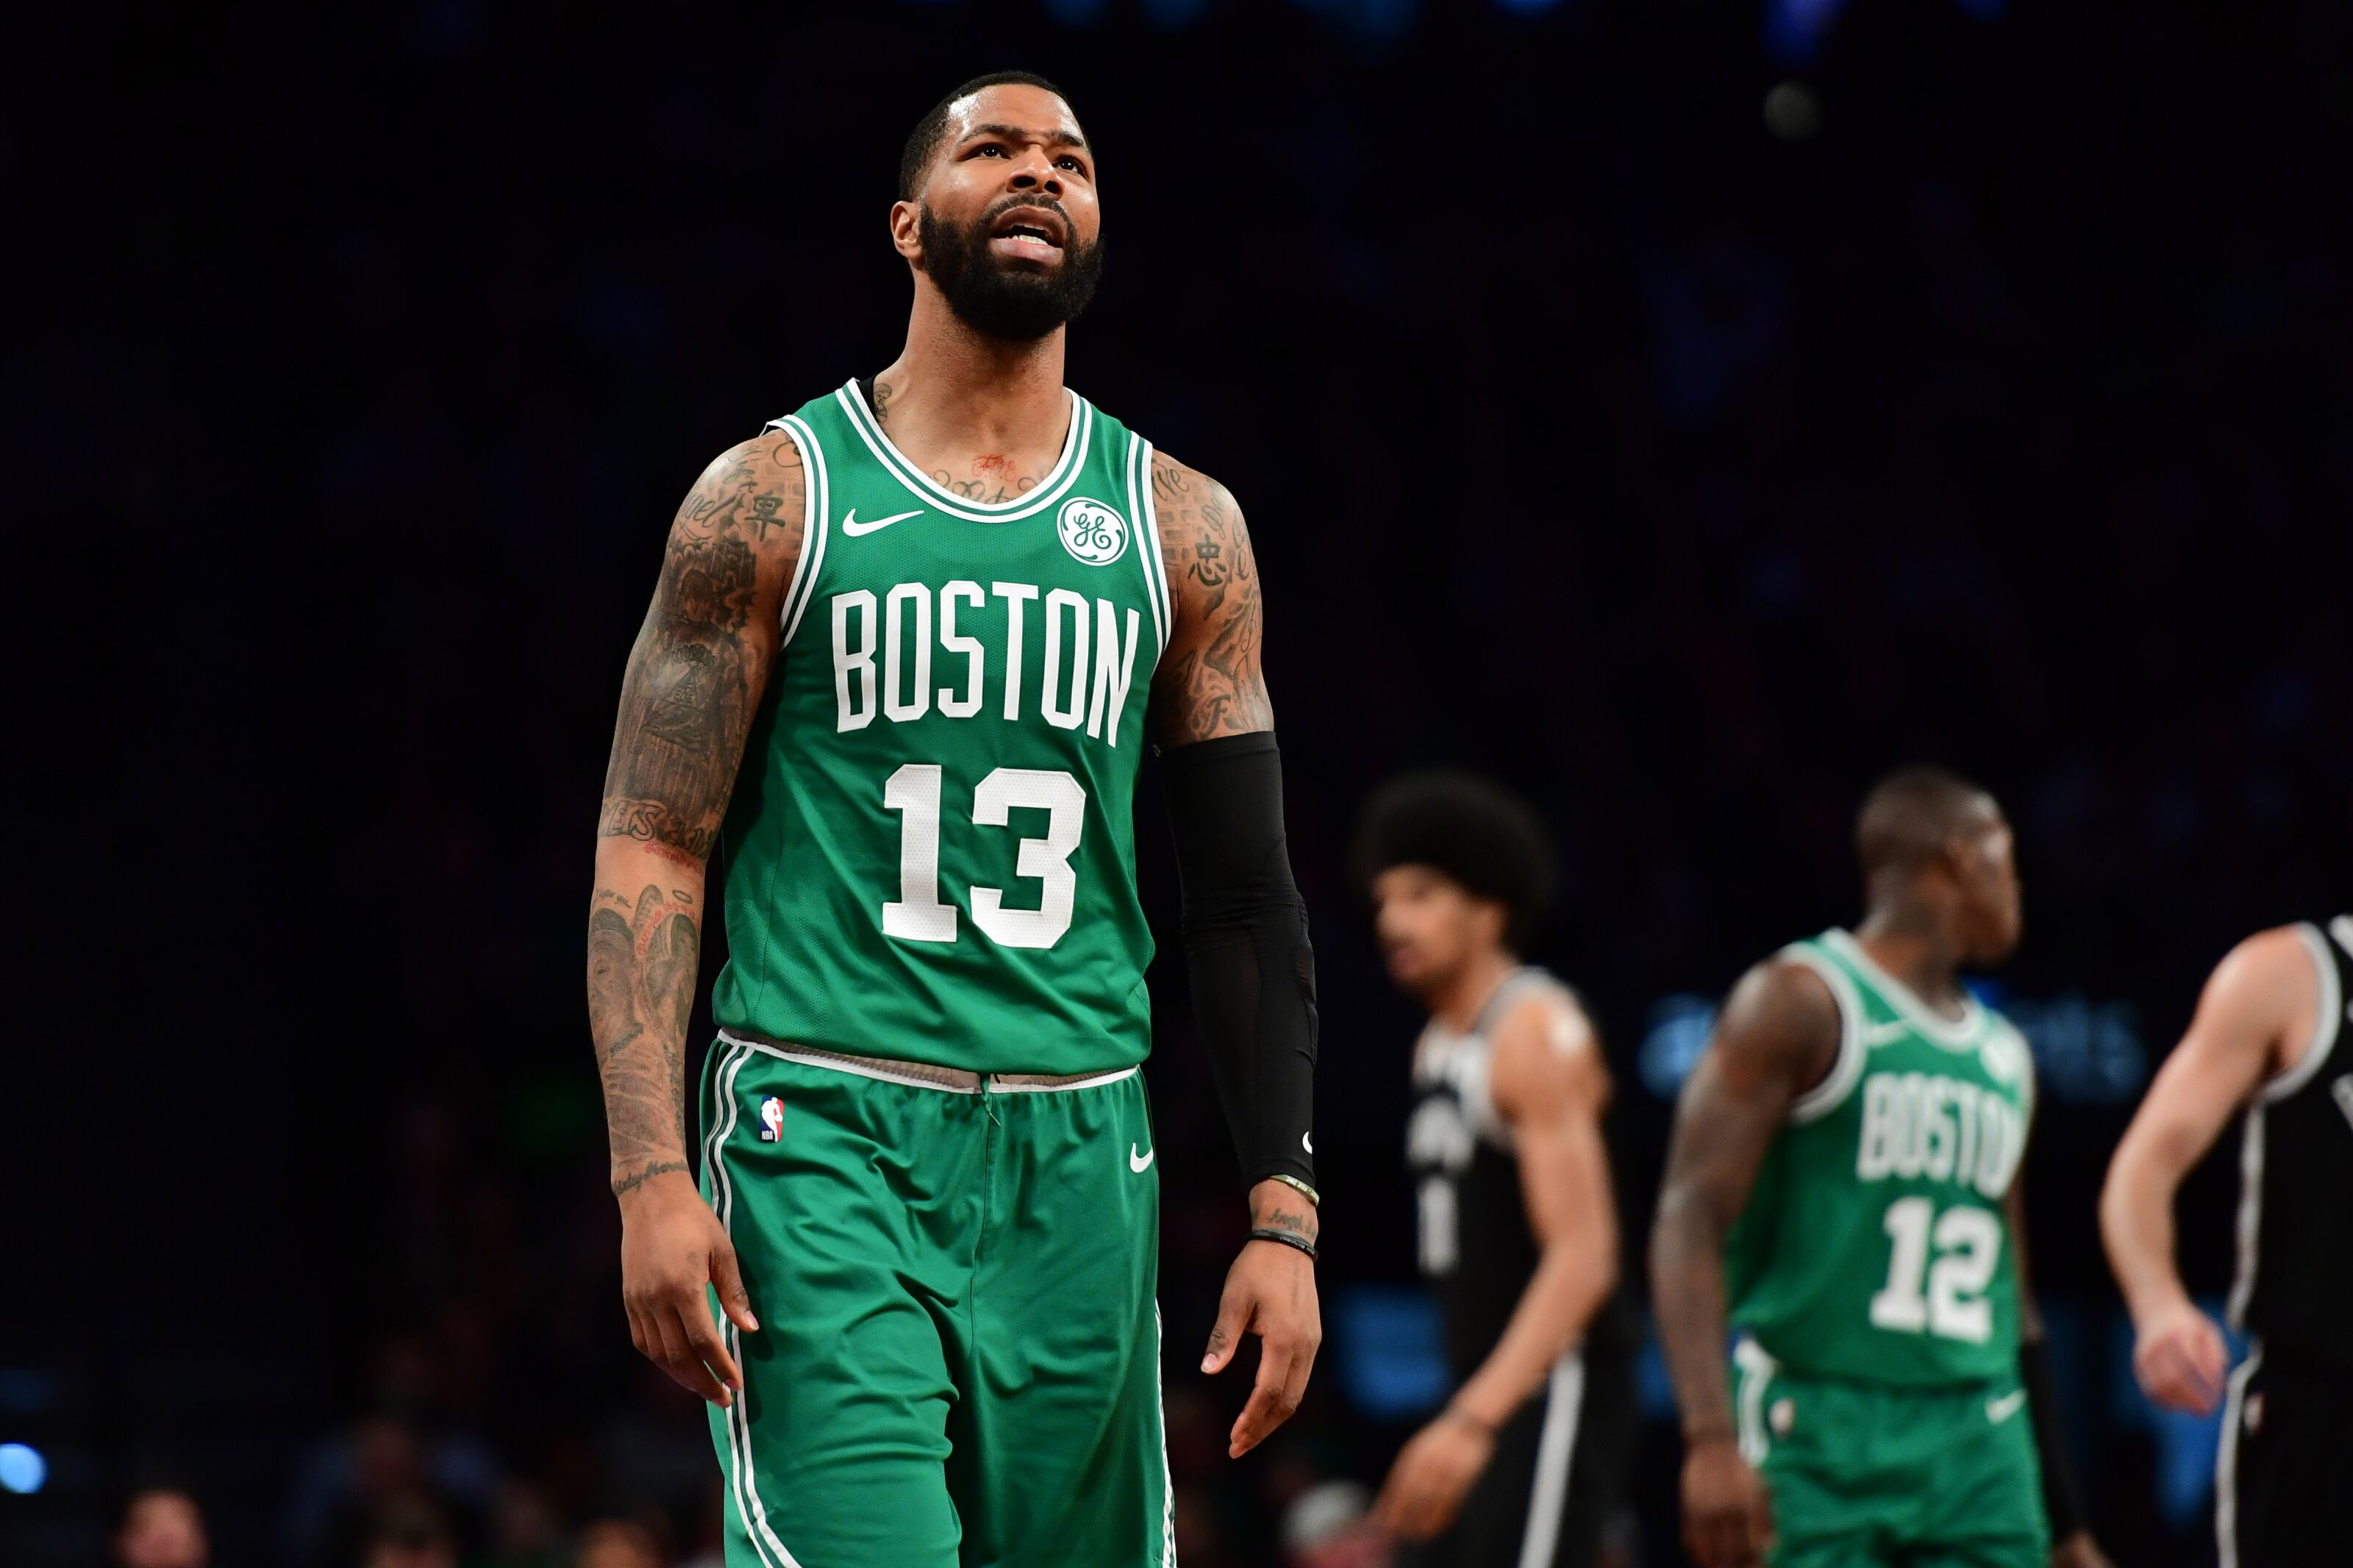 Marcus Morris throws shade at former Boston Celtics teammate Kyrie Irving